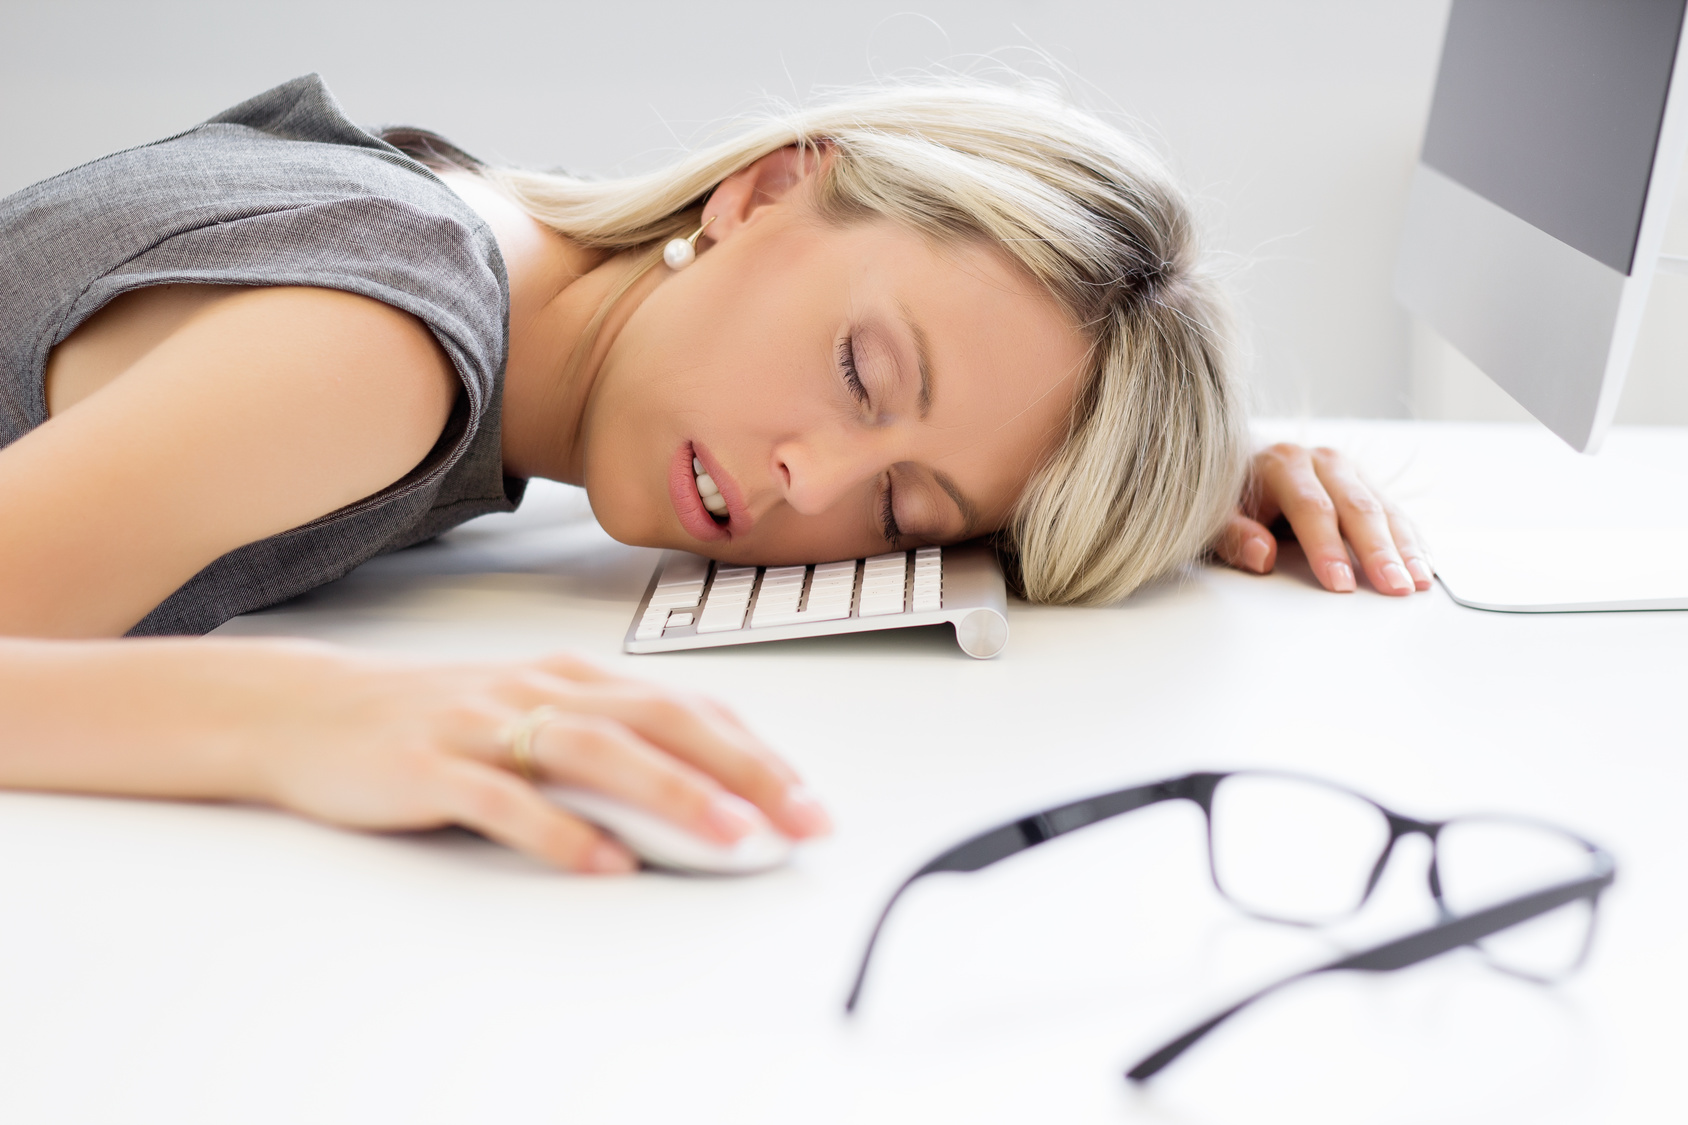 Exhausted woman sleeping in front of computer